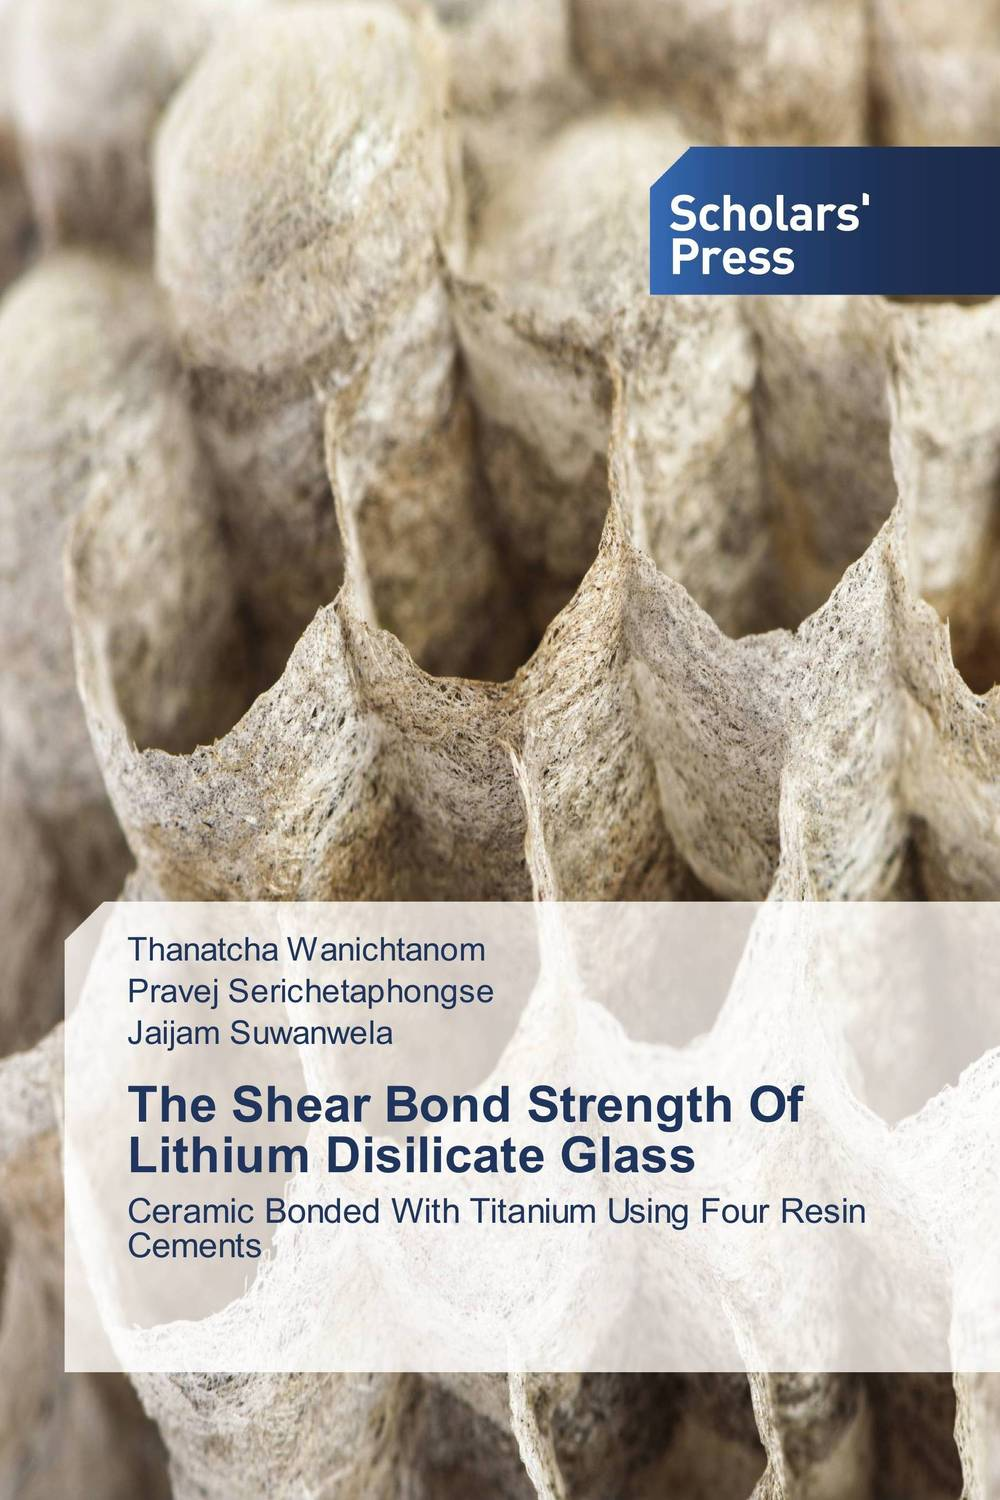 The Shear Bond Strength Of Lithium Disilicate Glass sorento 1586 1p favourite 1116433